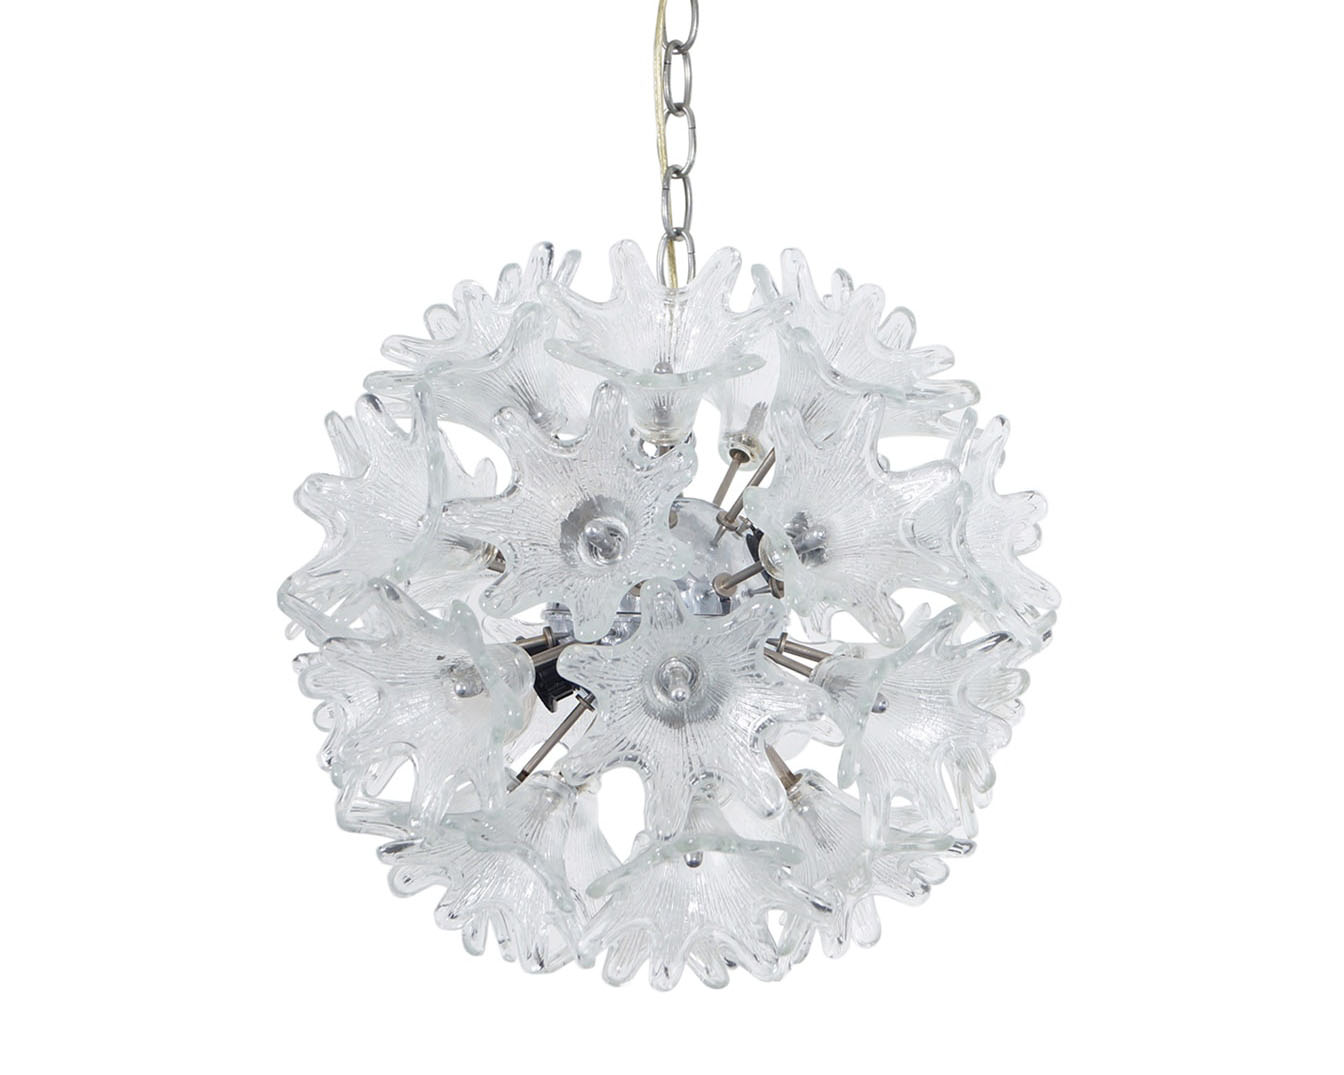 Vintage Espirit Murano Glass Chandelier